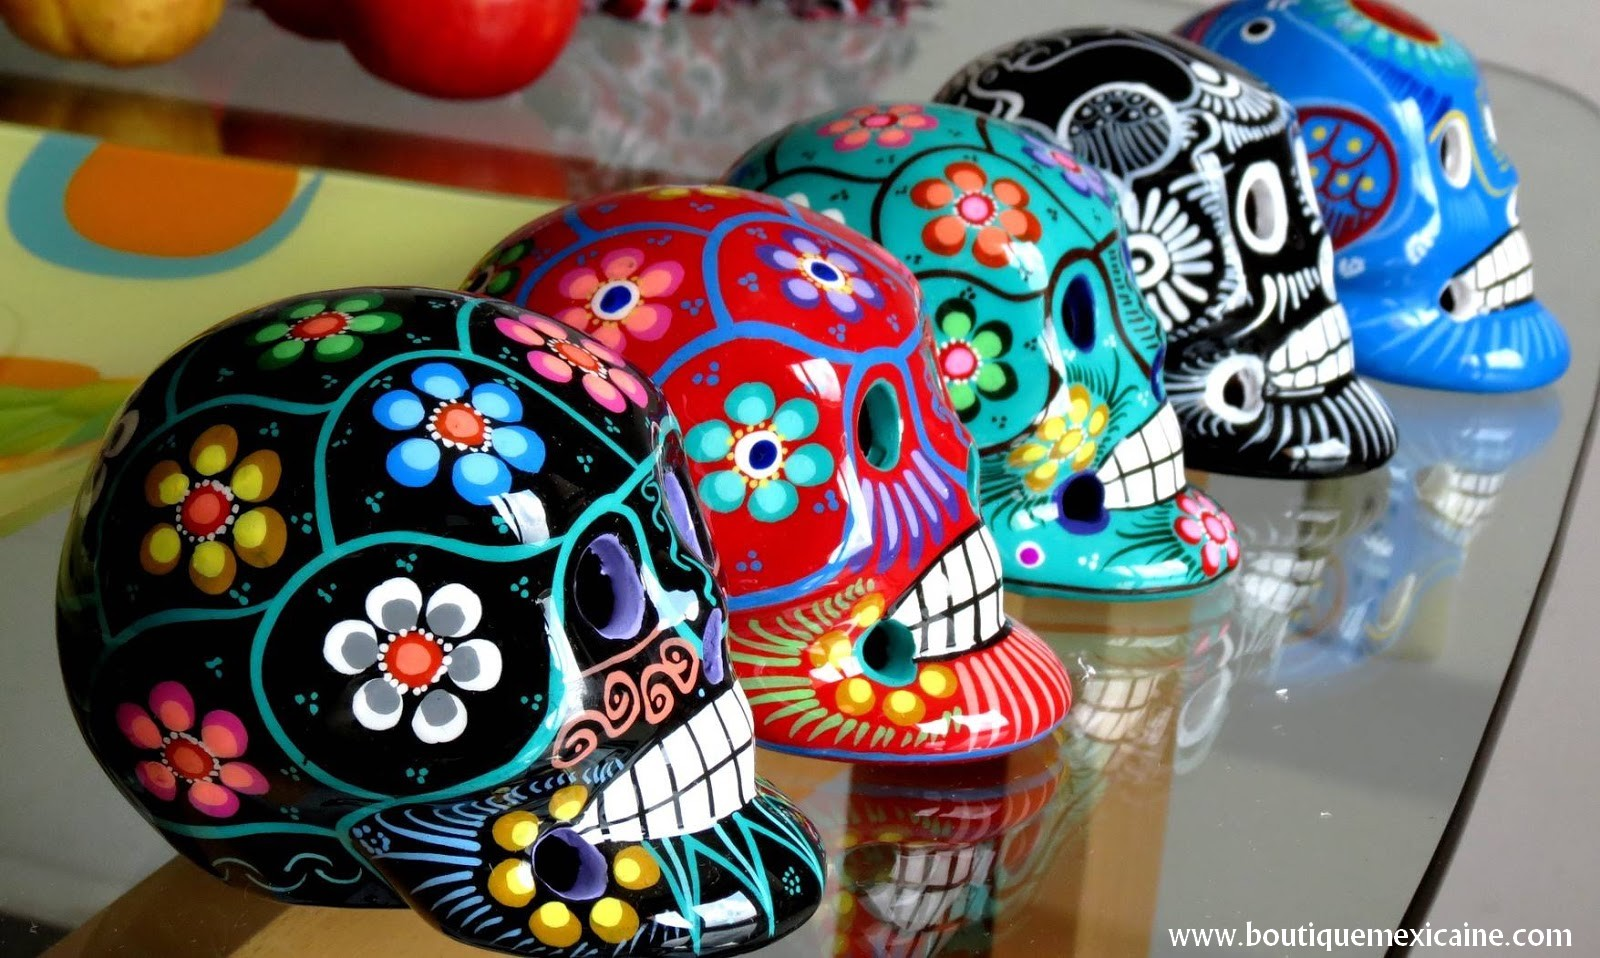 magasin mexicain tete de mort mexicaine calavera mexicaine. Black Bedroom Furniture Sets. Home Design Ideas